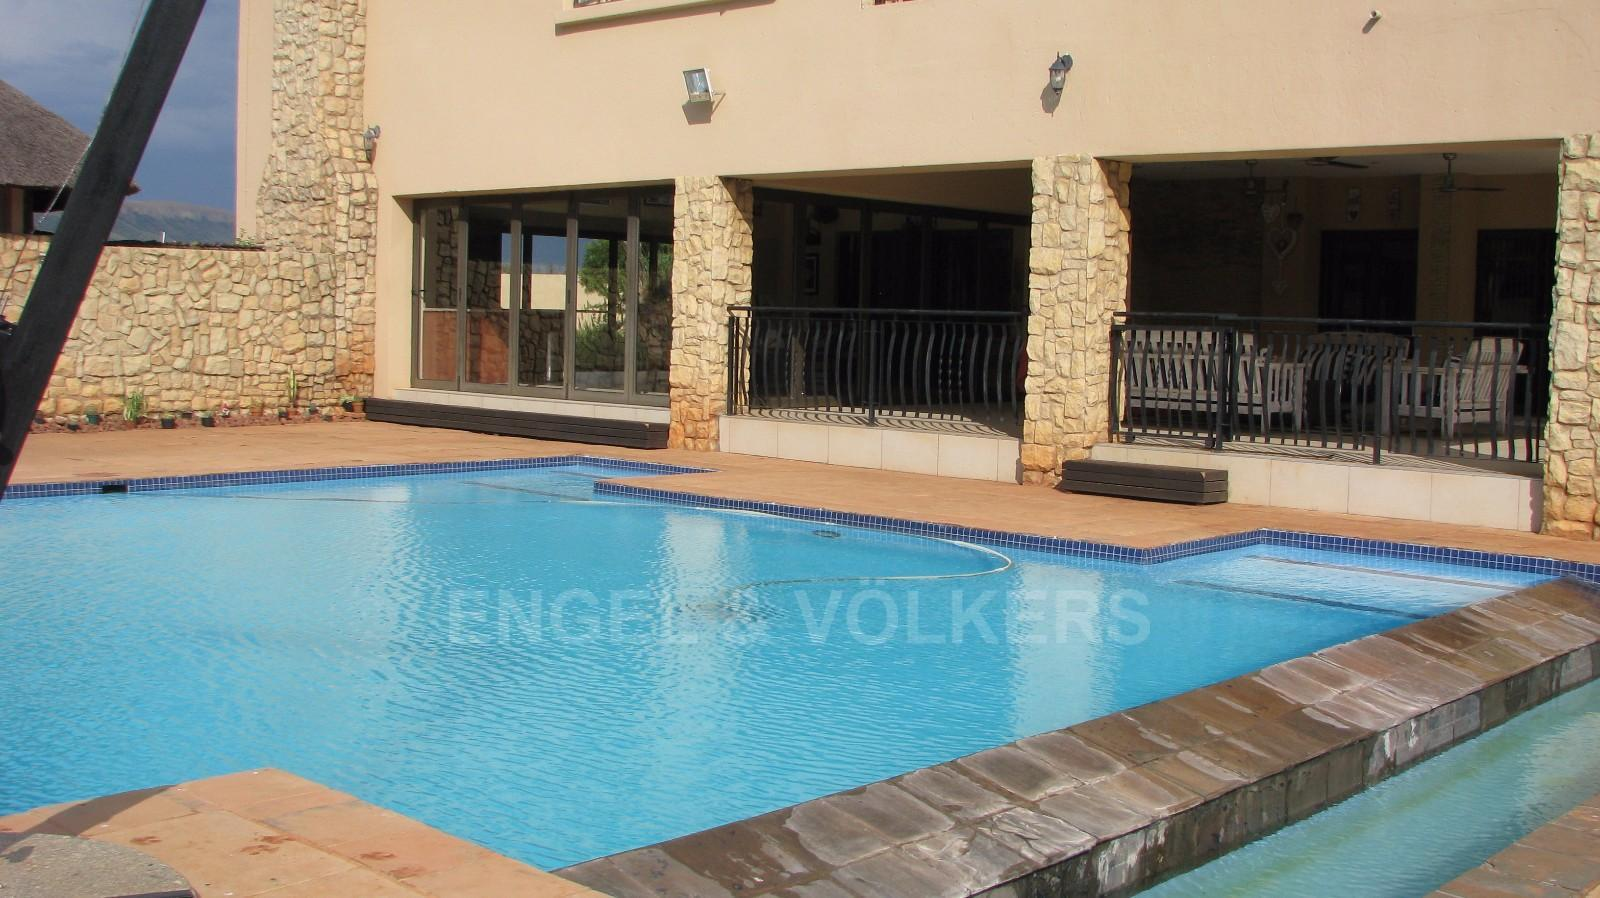 House in Melodie A/h - Two entrances to this stunning pool